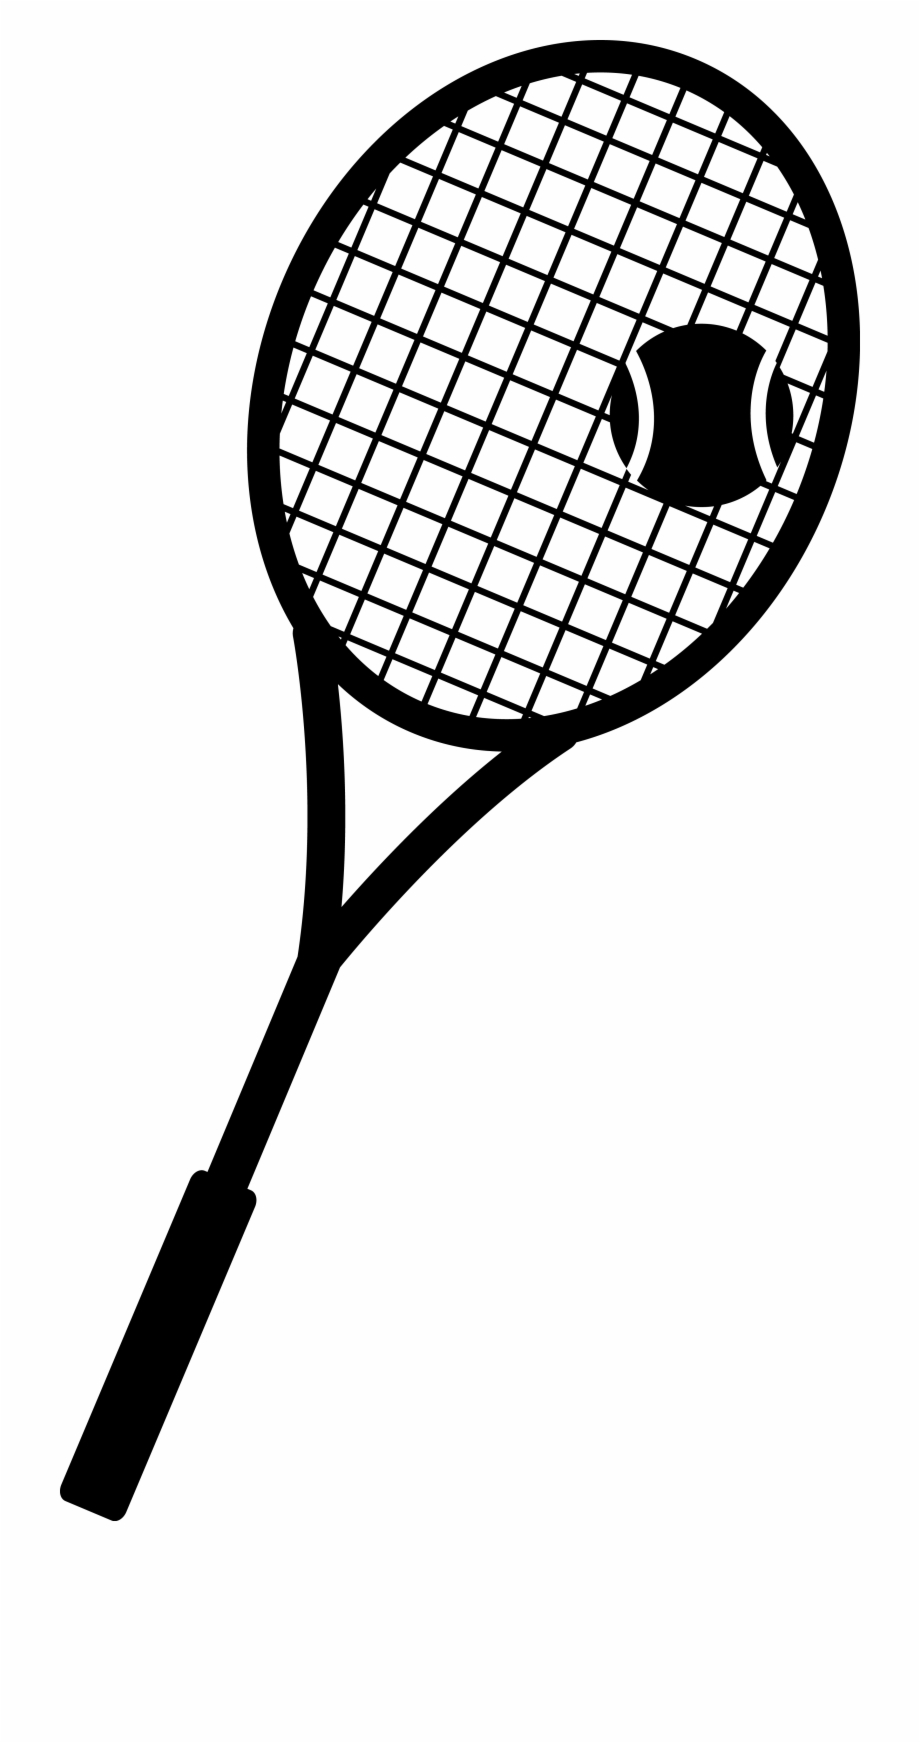 Crossed Tennis Racket Images Free Download Clipart.